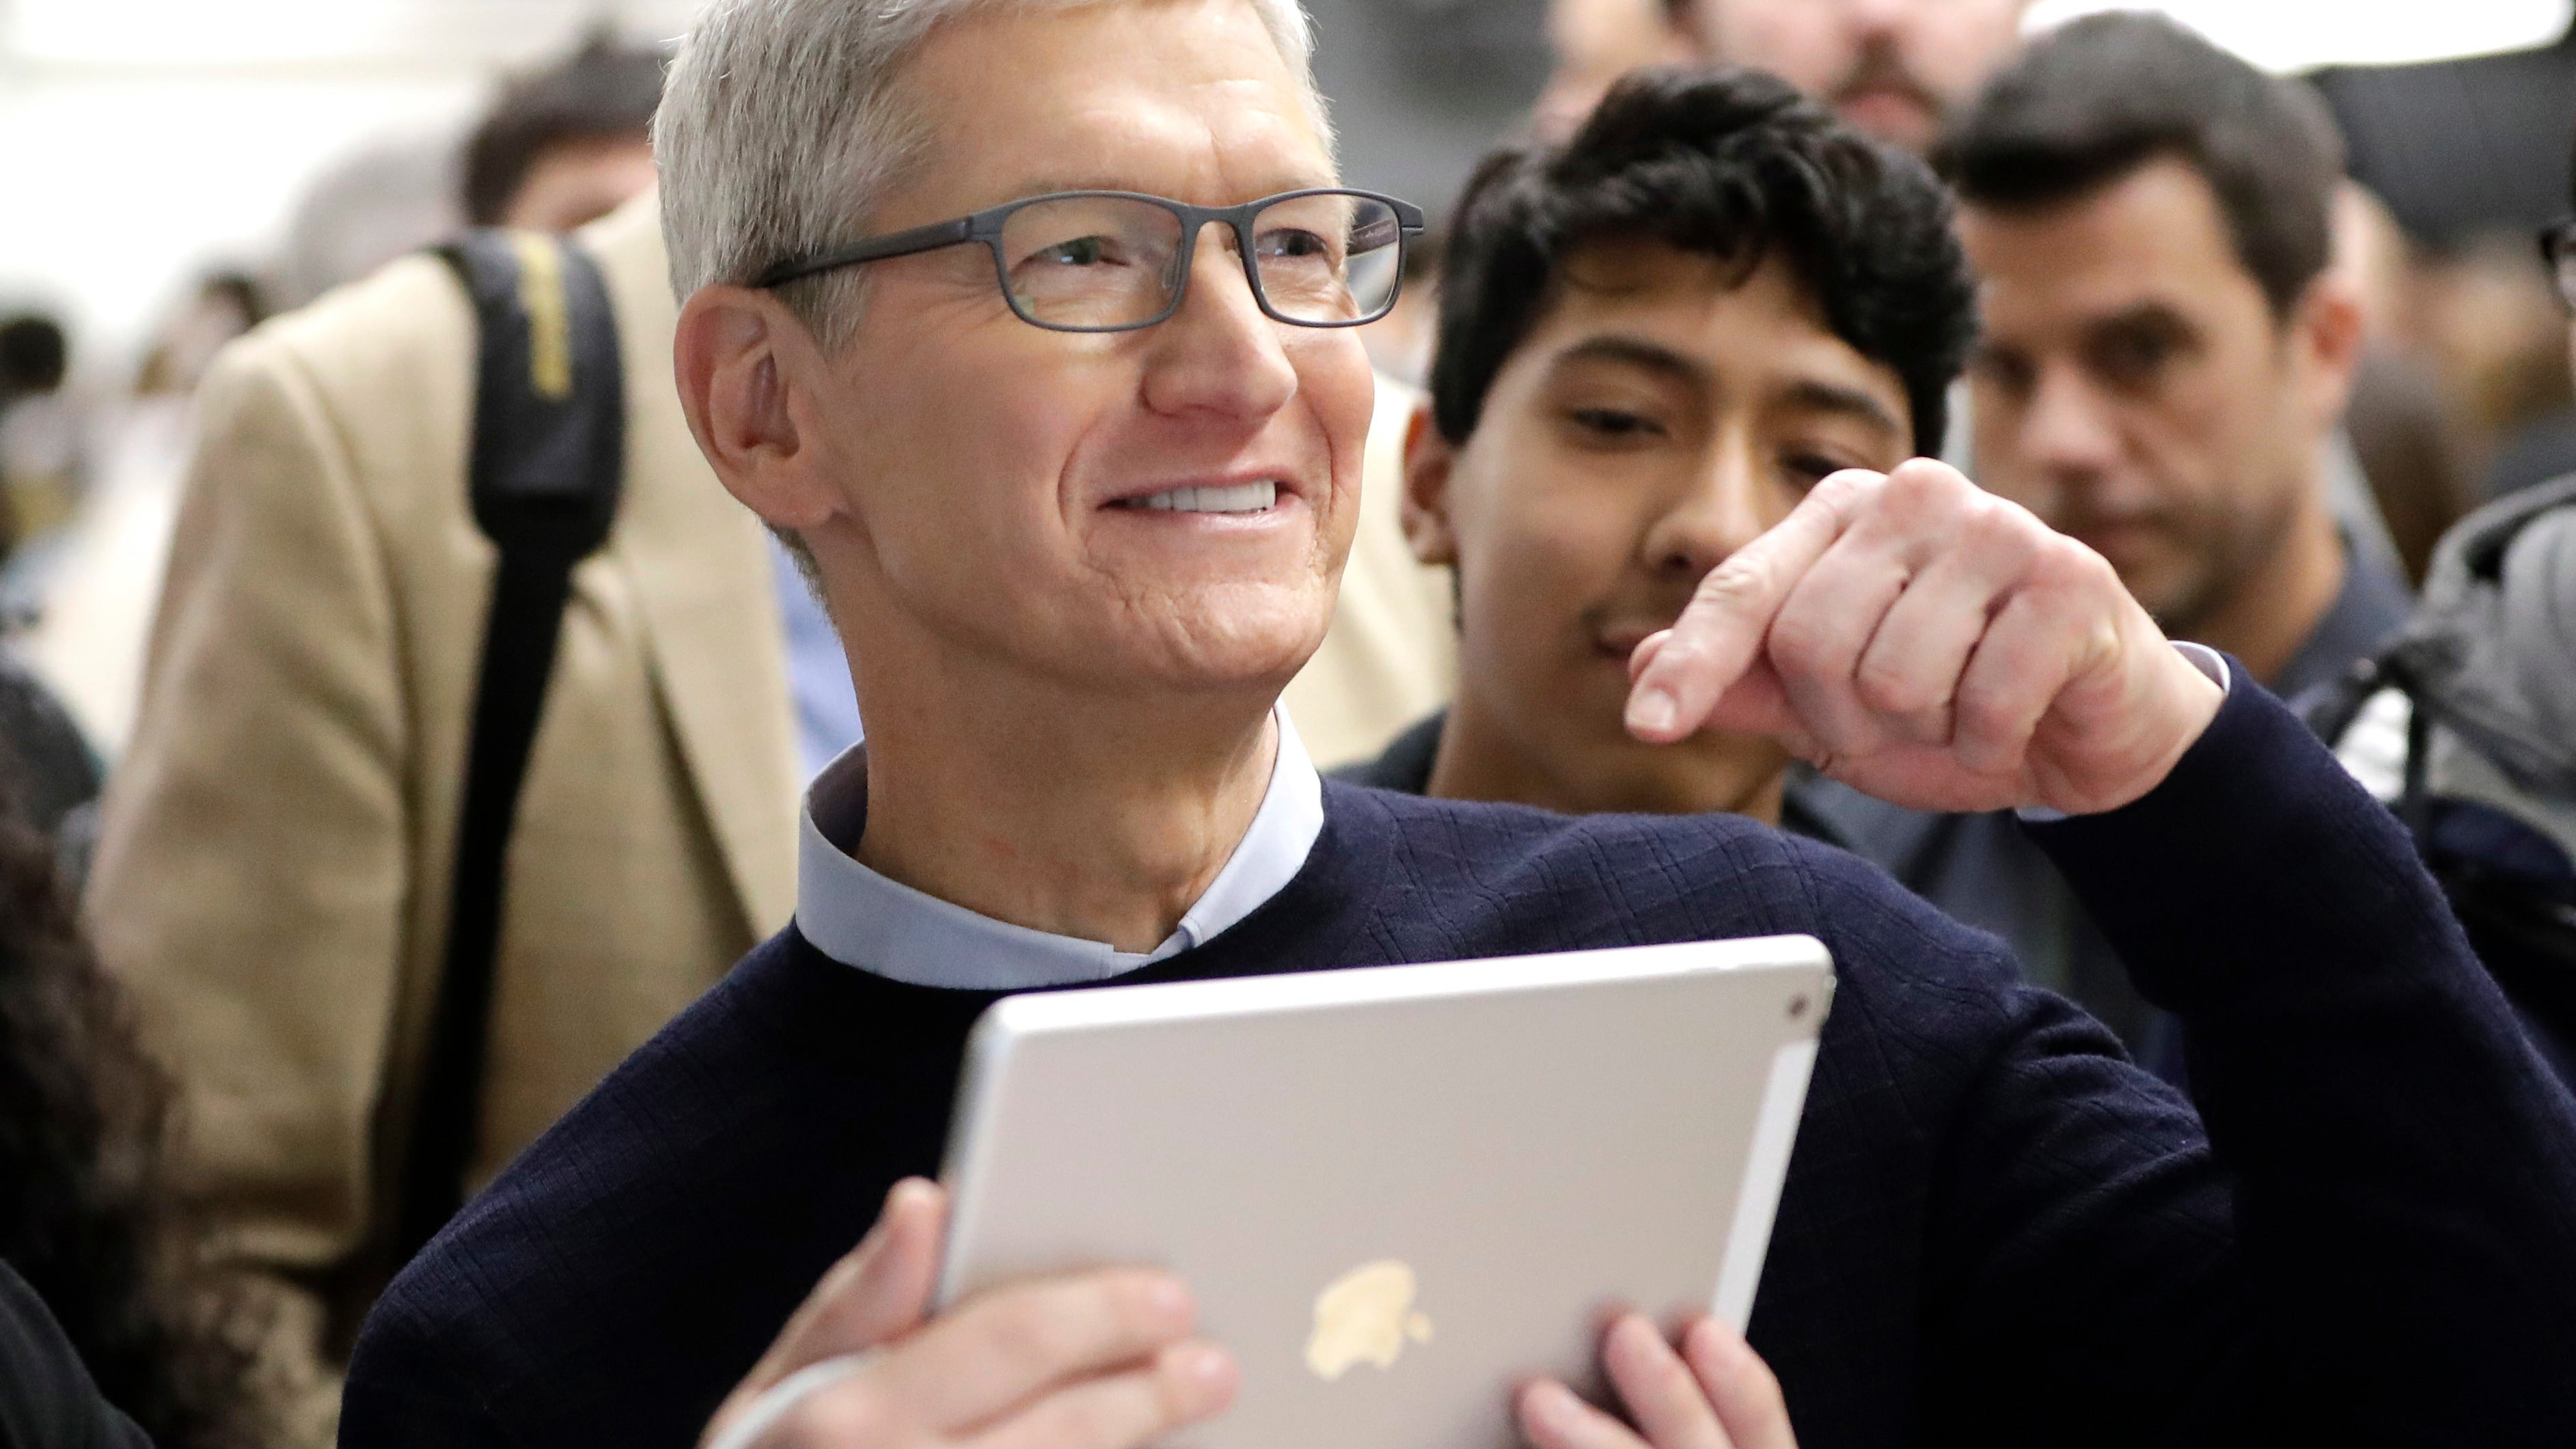 c7b6ce01778 Apple Will Spend $133 Billion Of That Cash It Stashed Abroad Buying Back  Its Own Stock